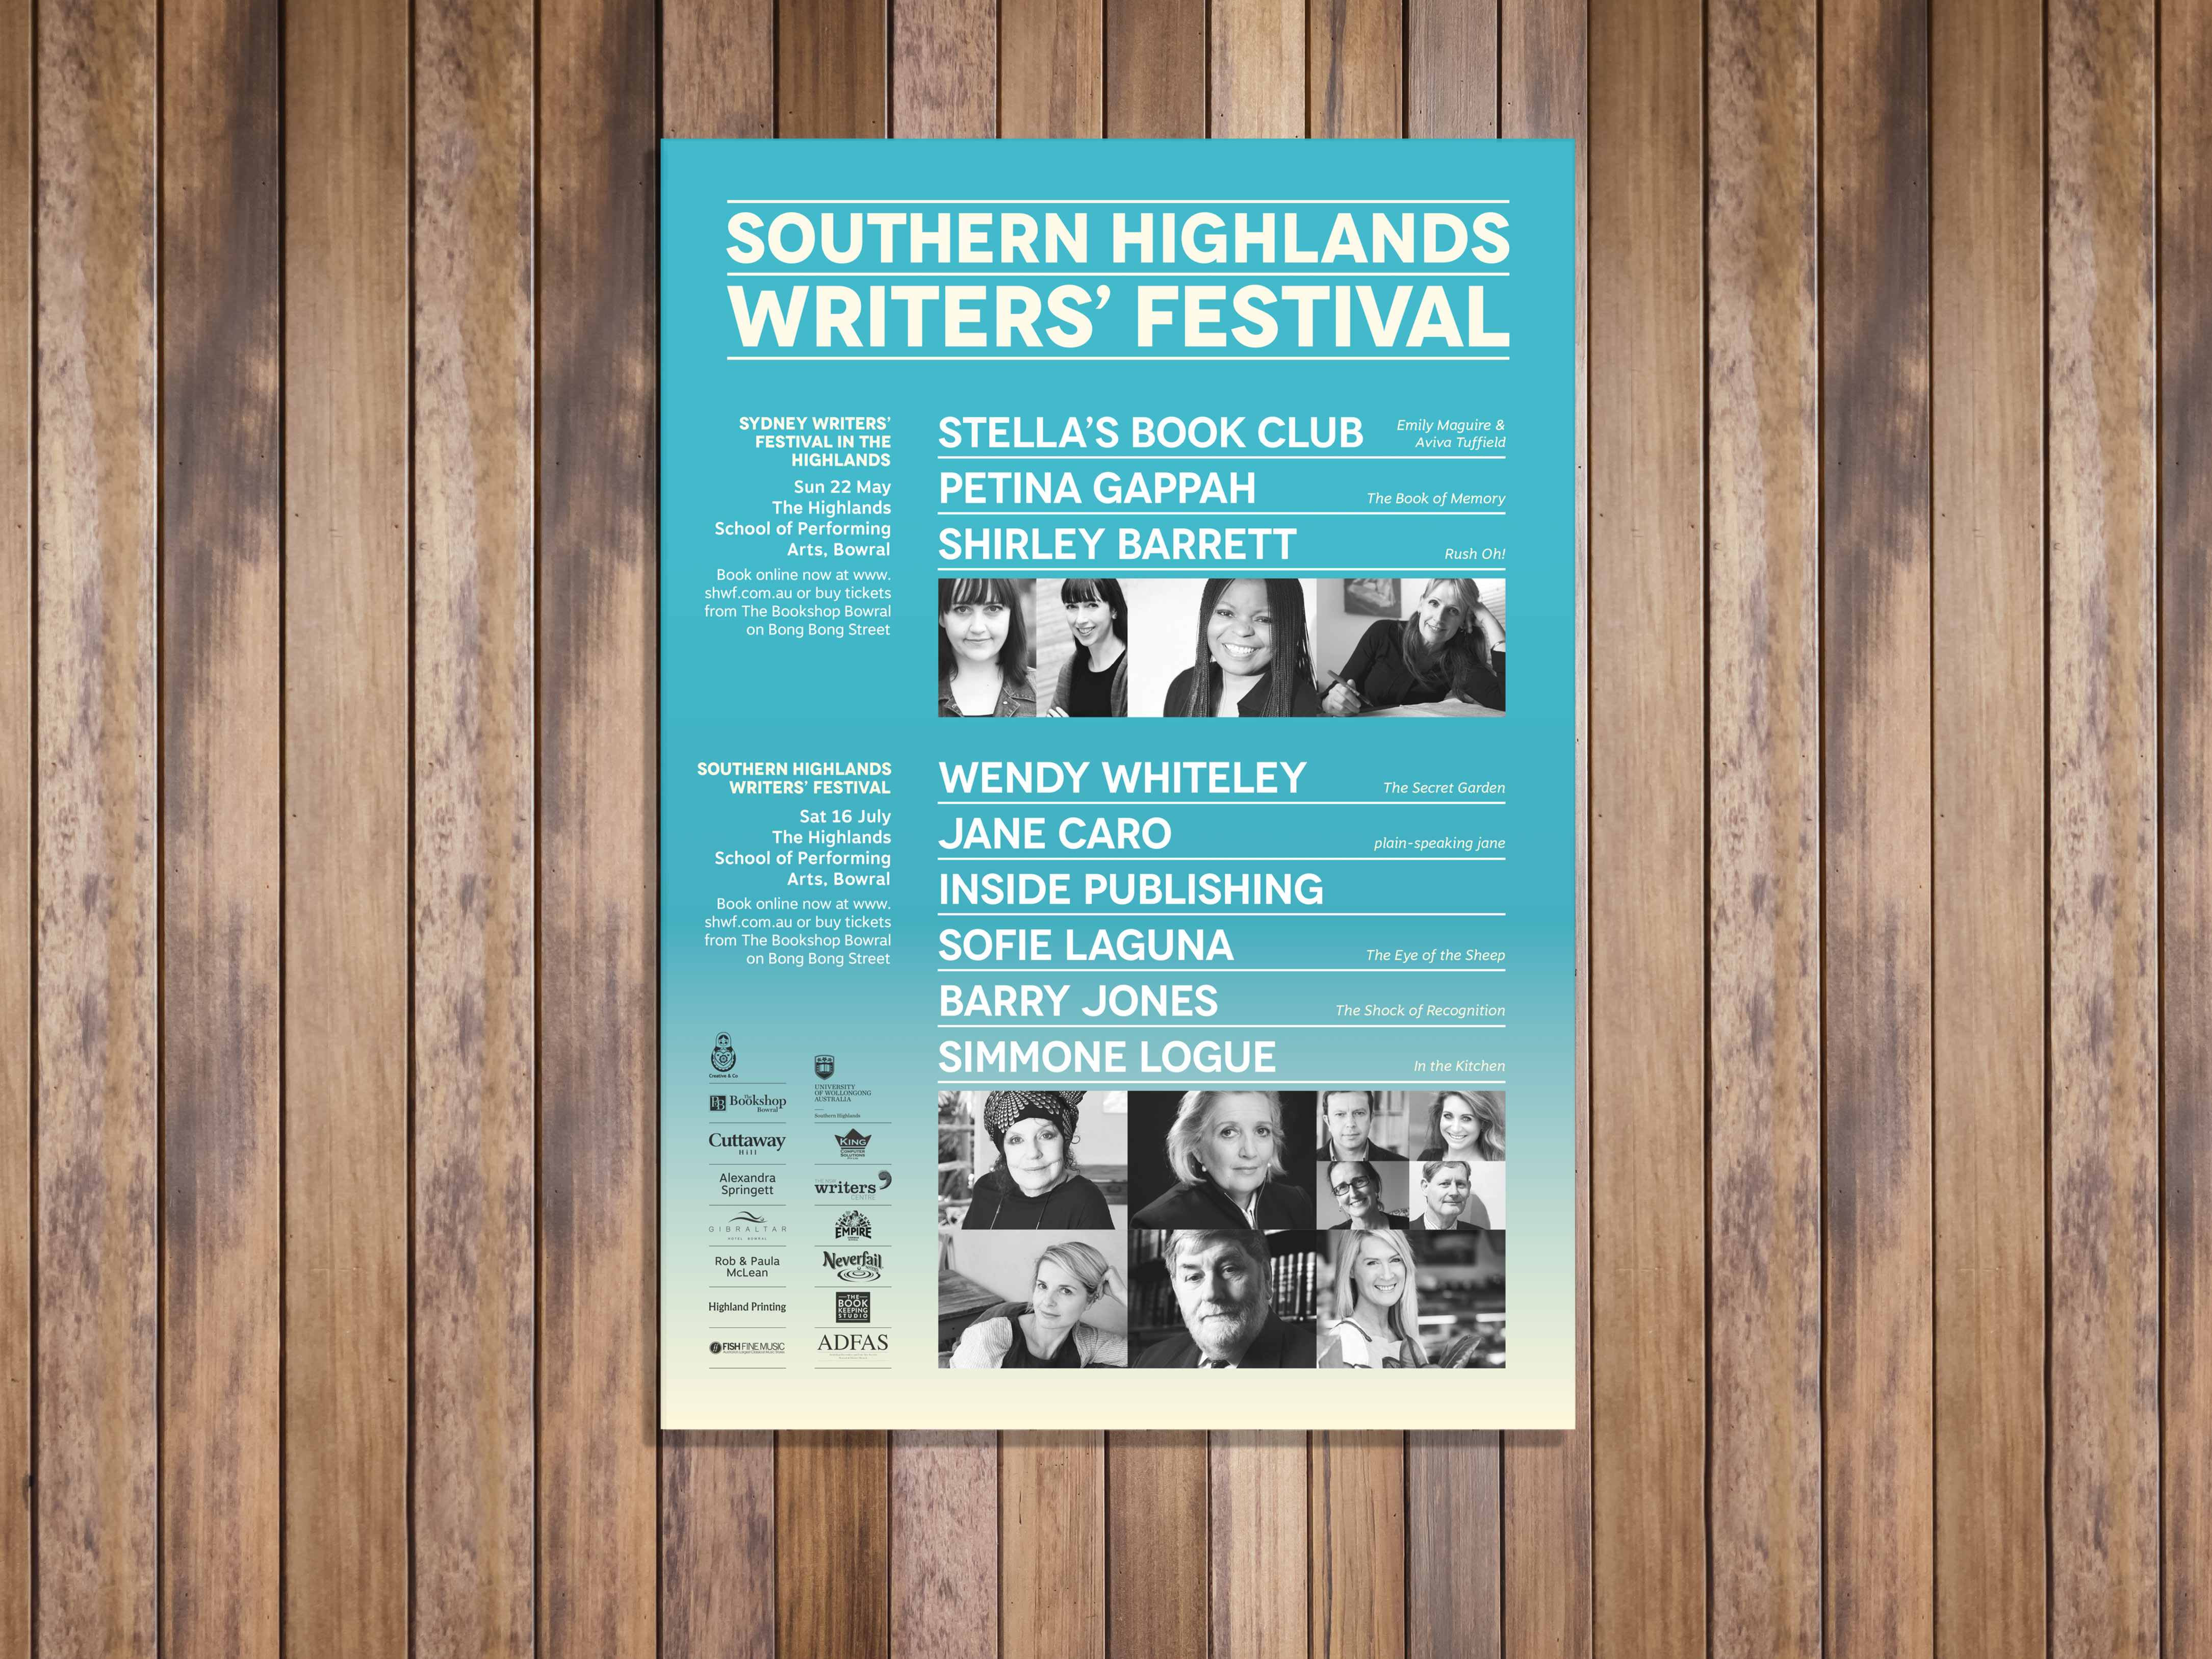 Poster design for the Southern Highlands Writers' Festival 2016